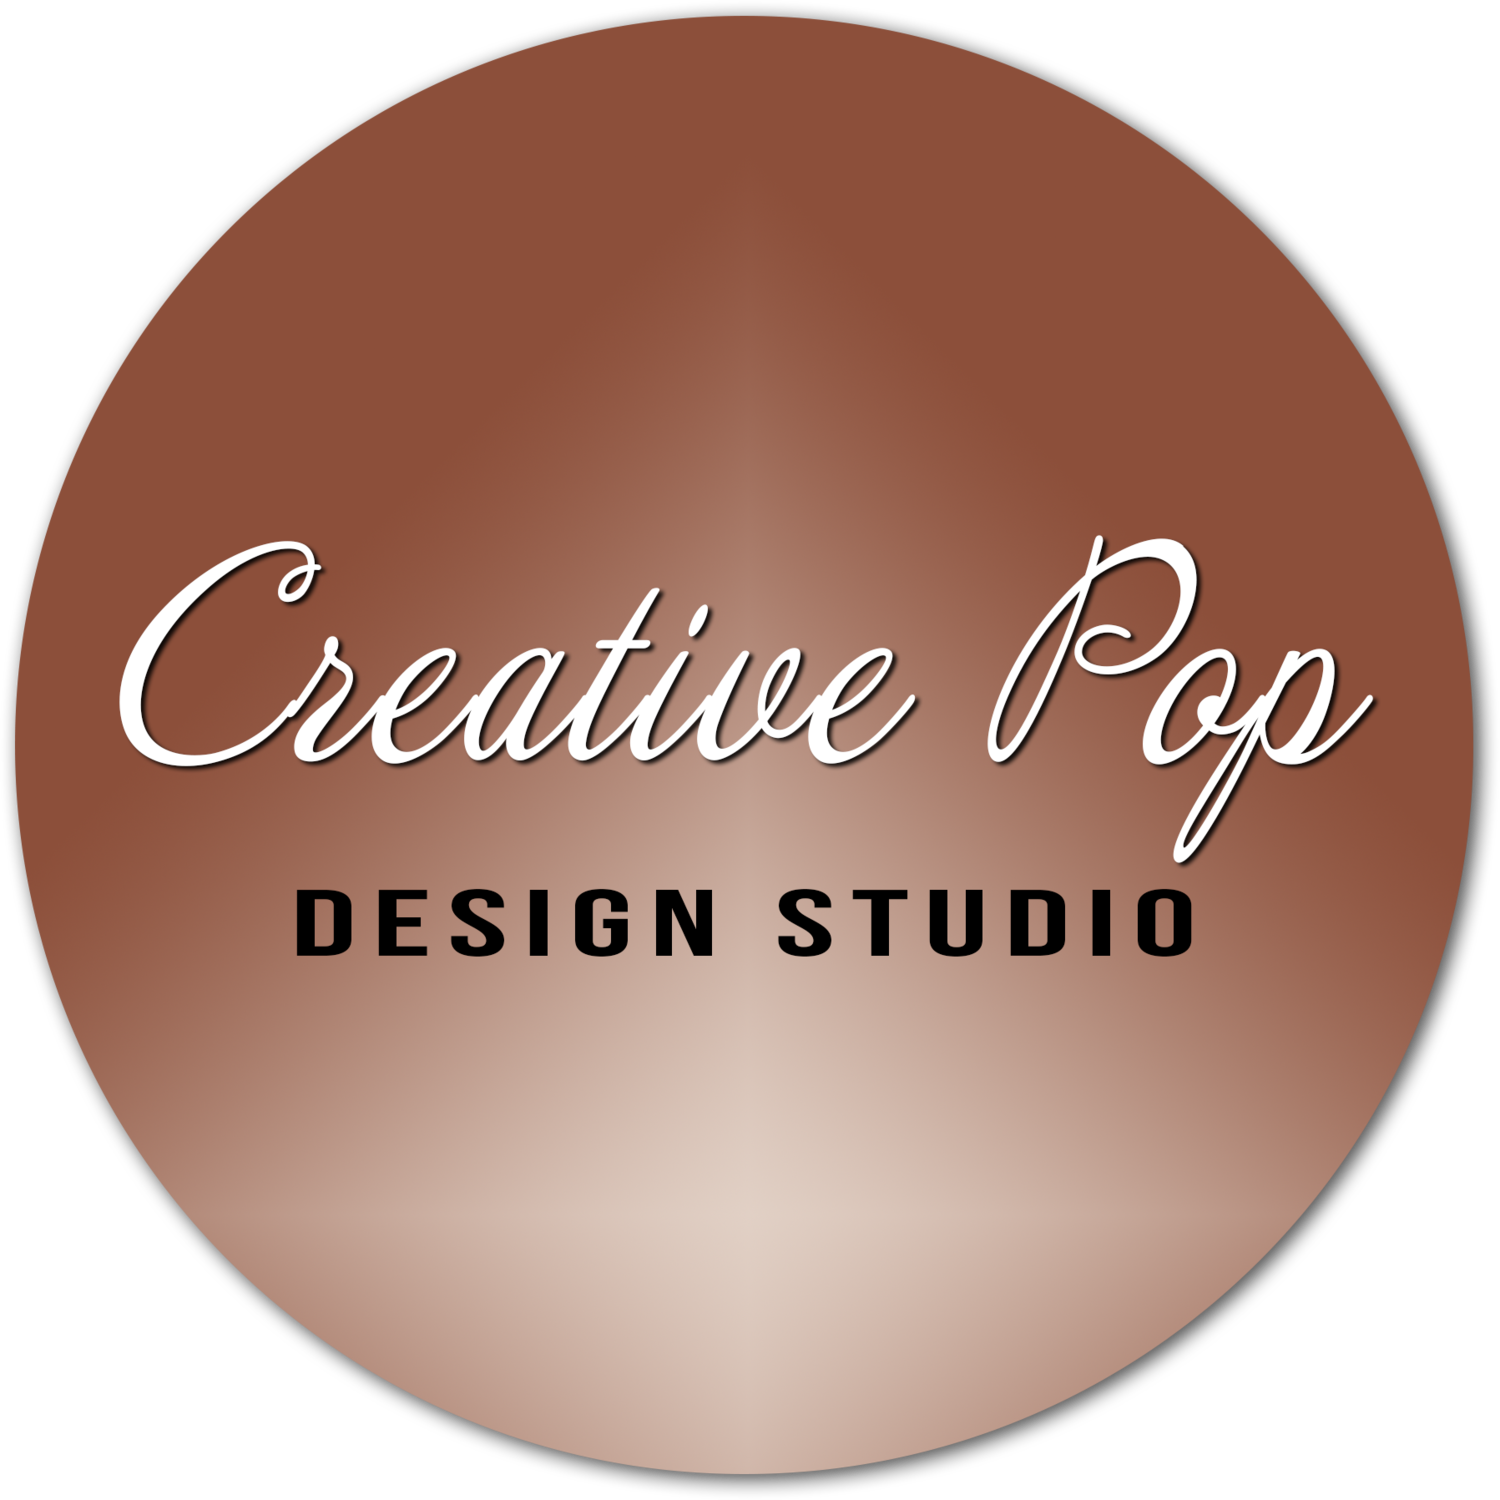 CREATIVE POP DESIGN STUDIO